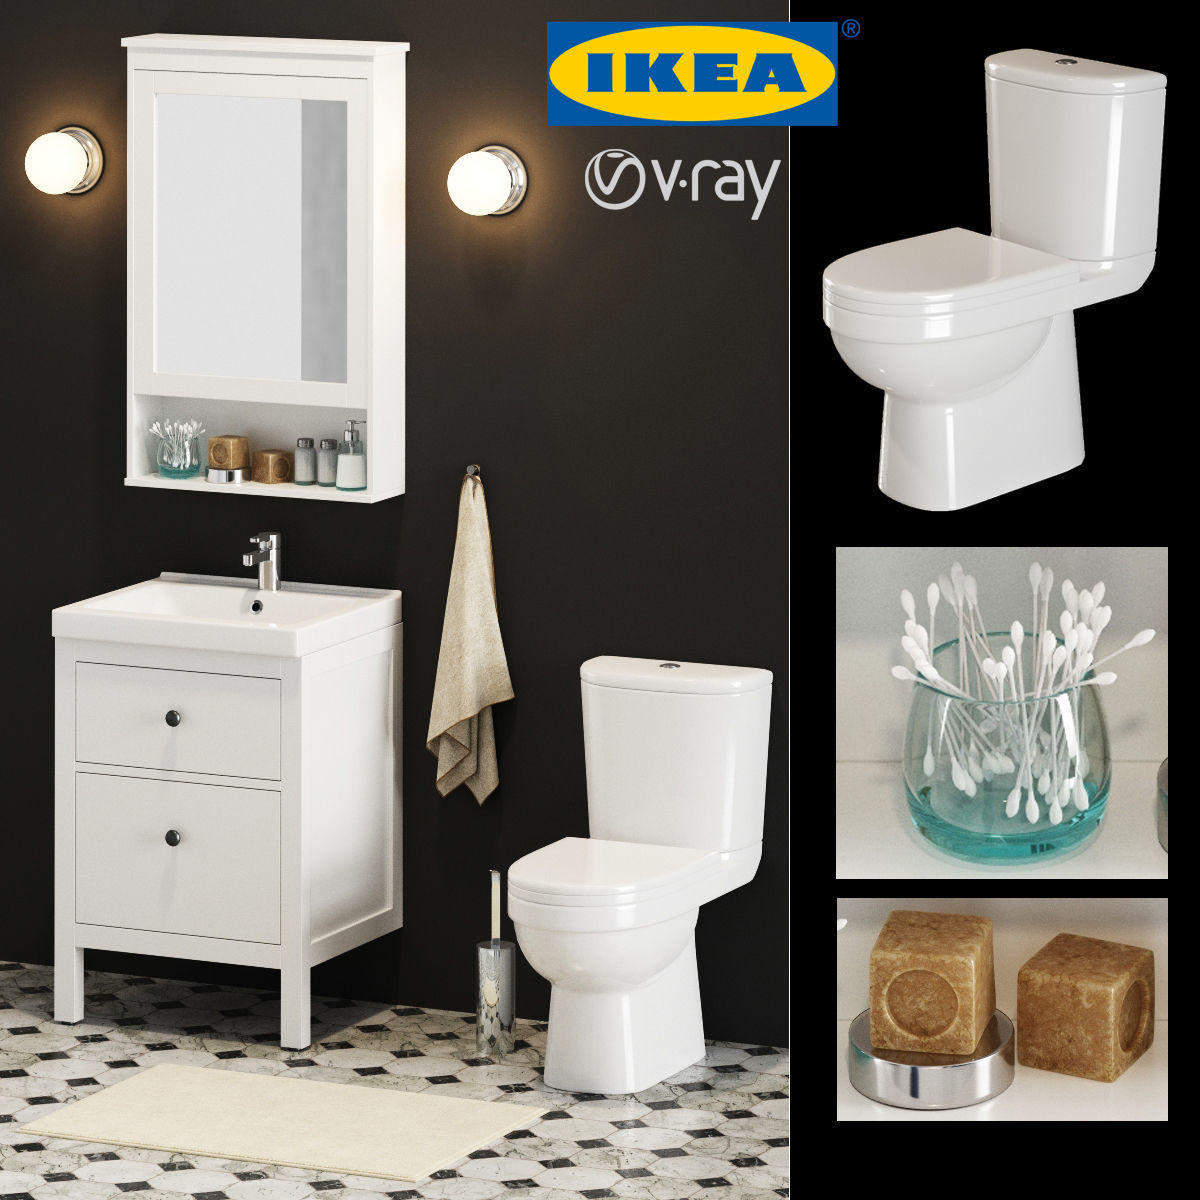 Ikea Dragan Badezimmer Set Gallery Ikea Bathroom Set